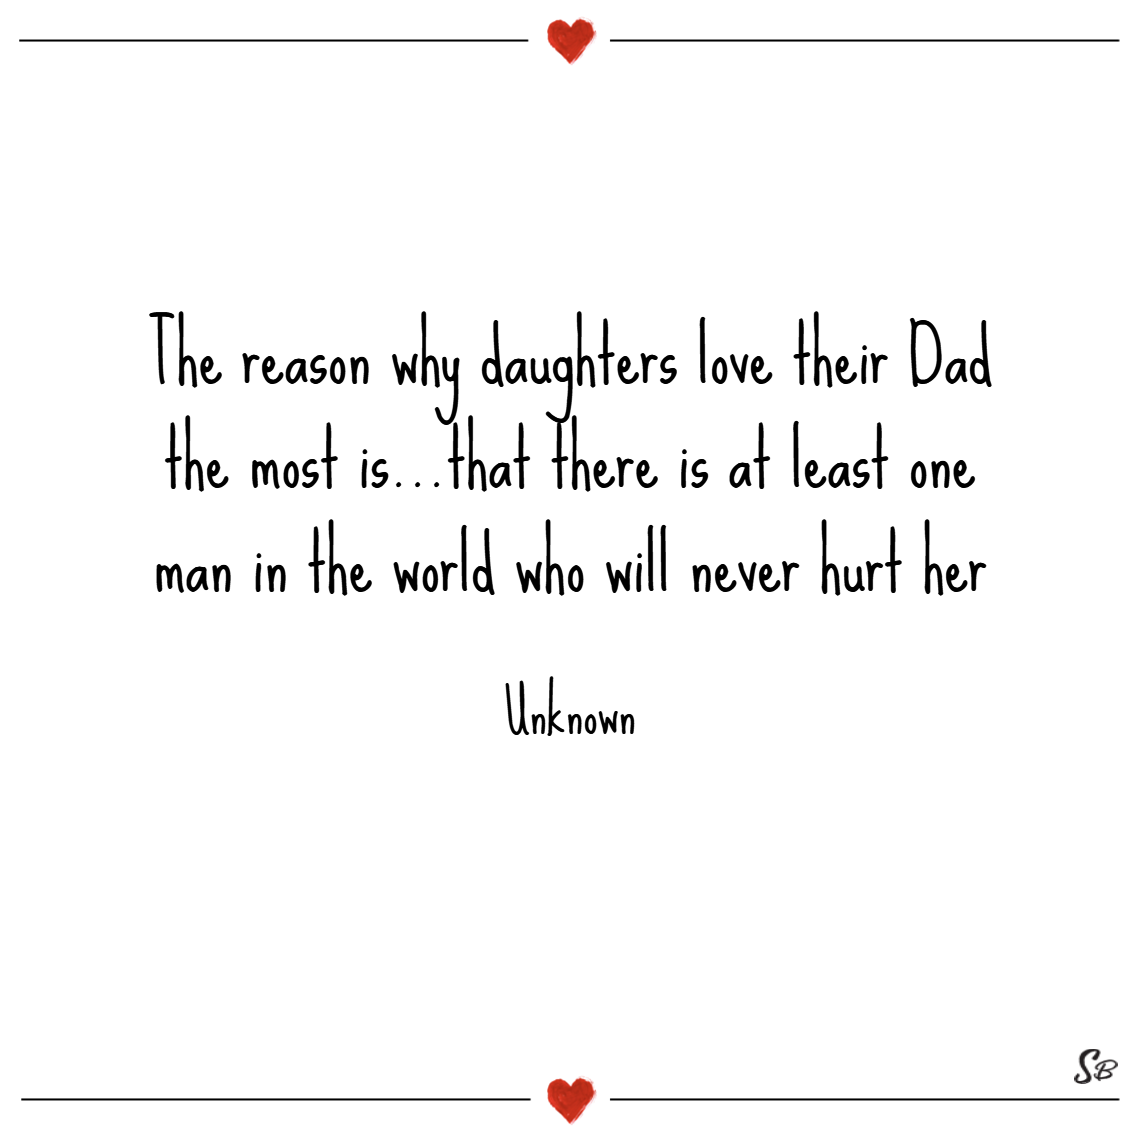 The reason why daughters love their dad the most is…that there is at least one man in the world who will never hurt her. – unknown